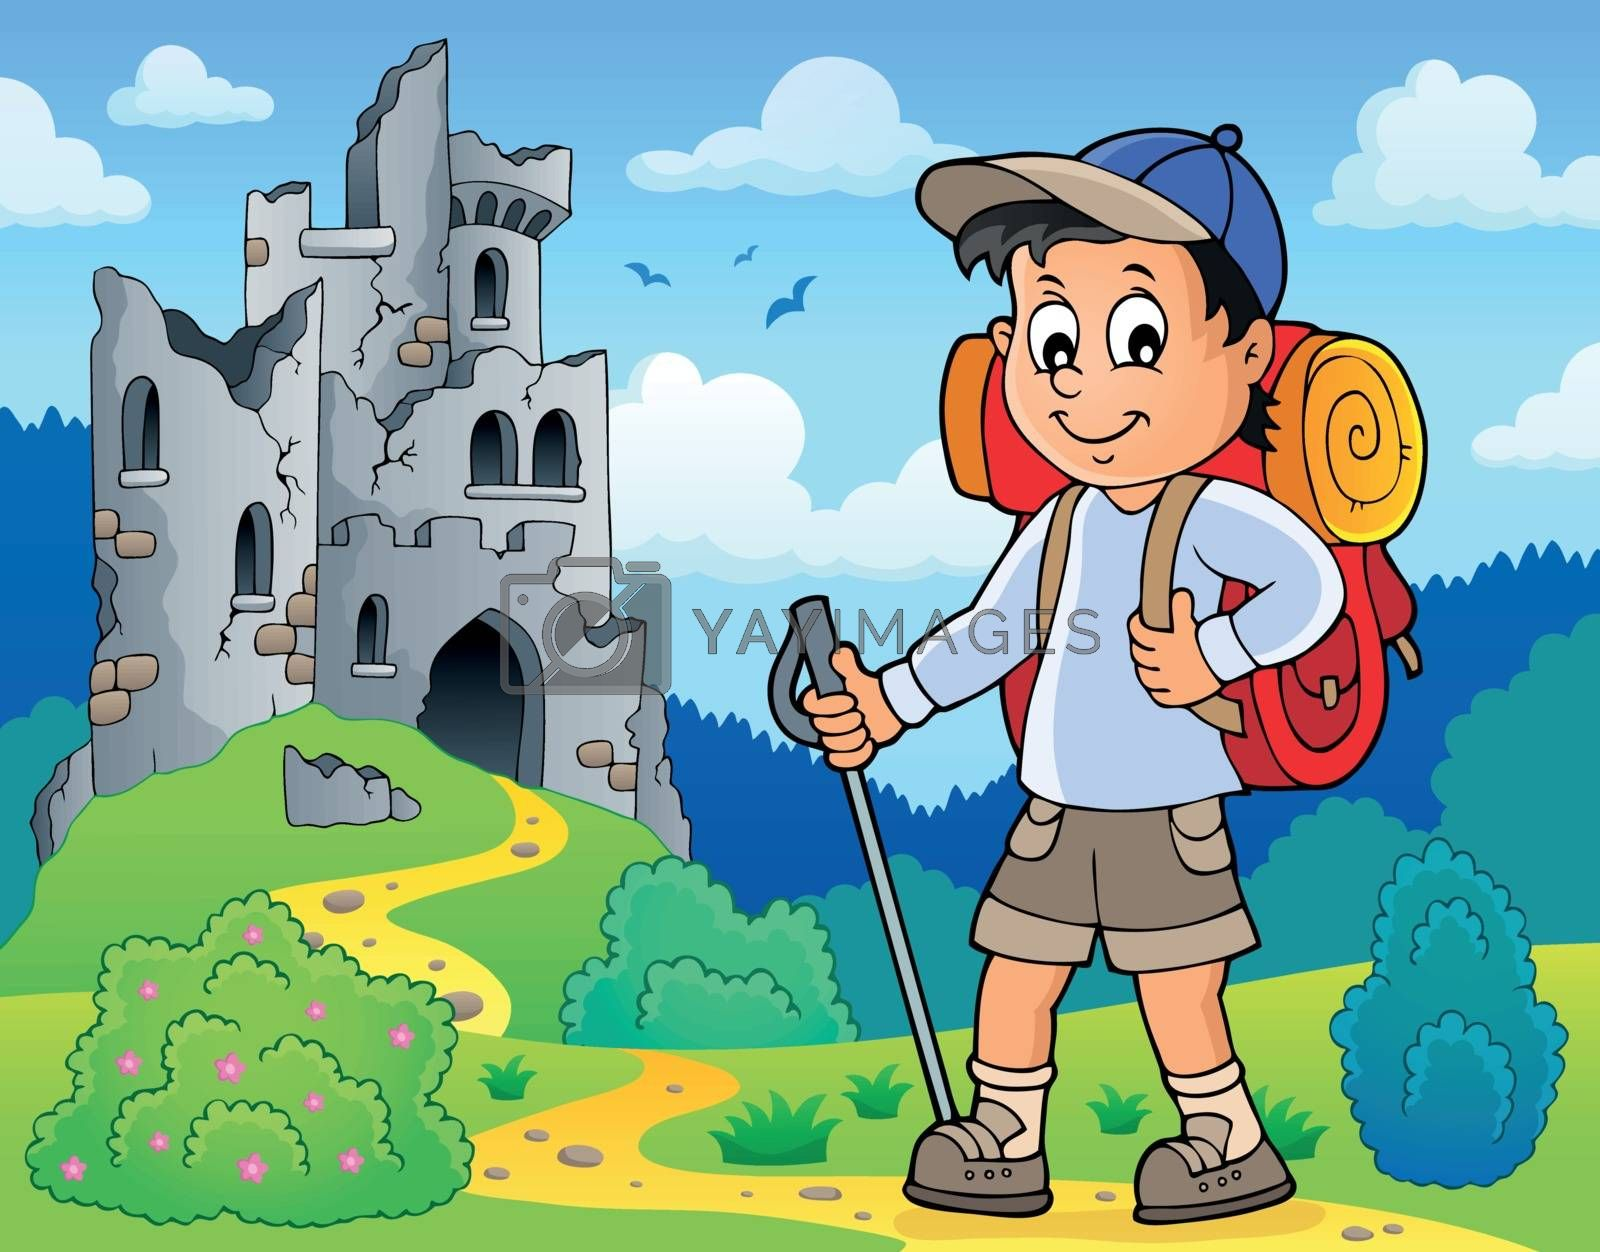 Image with hiker boy topic 3 - eps10 vector illustration.